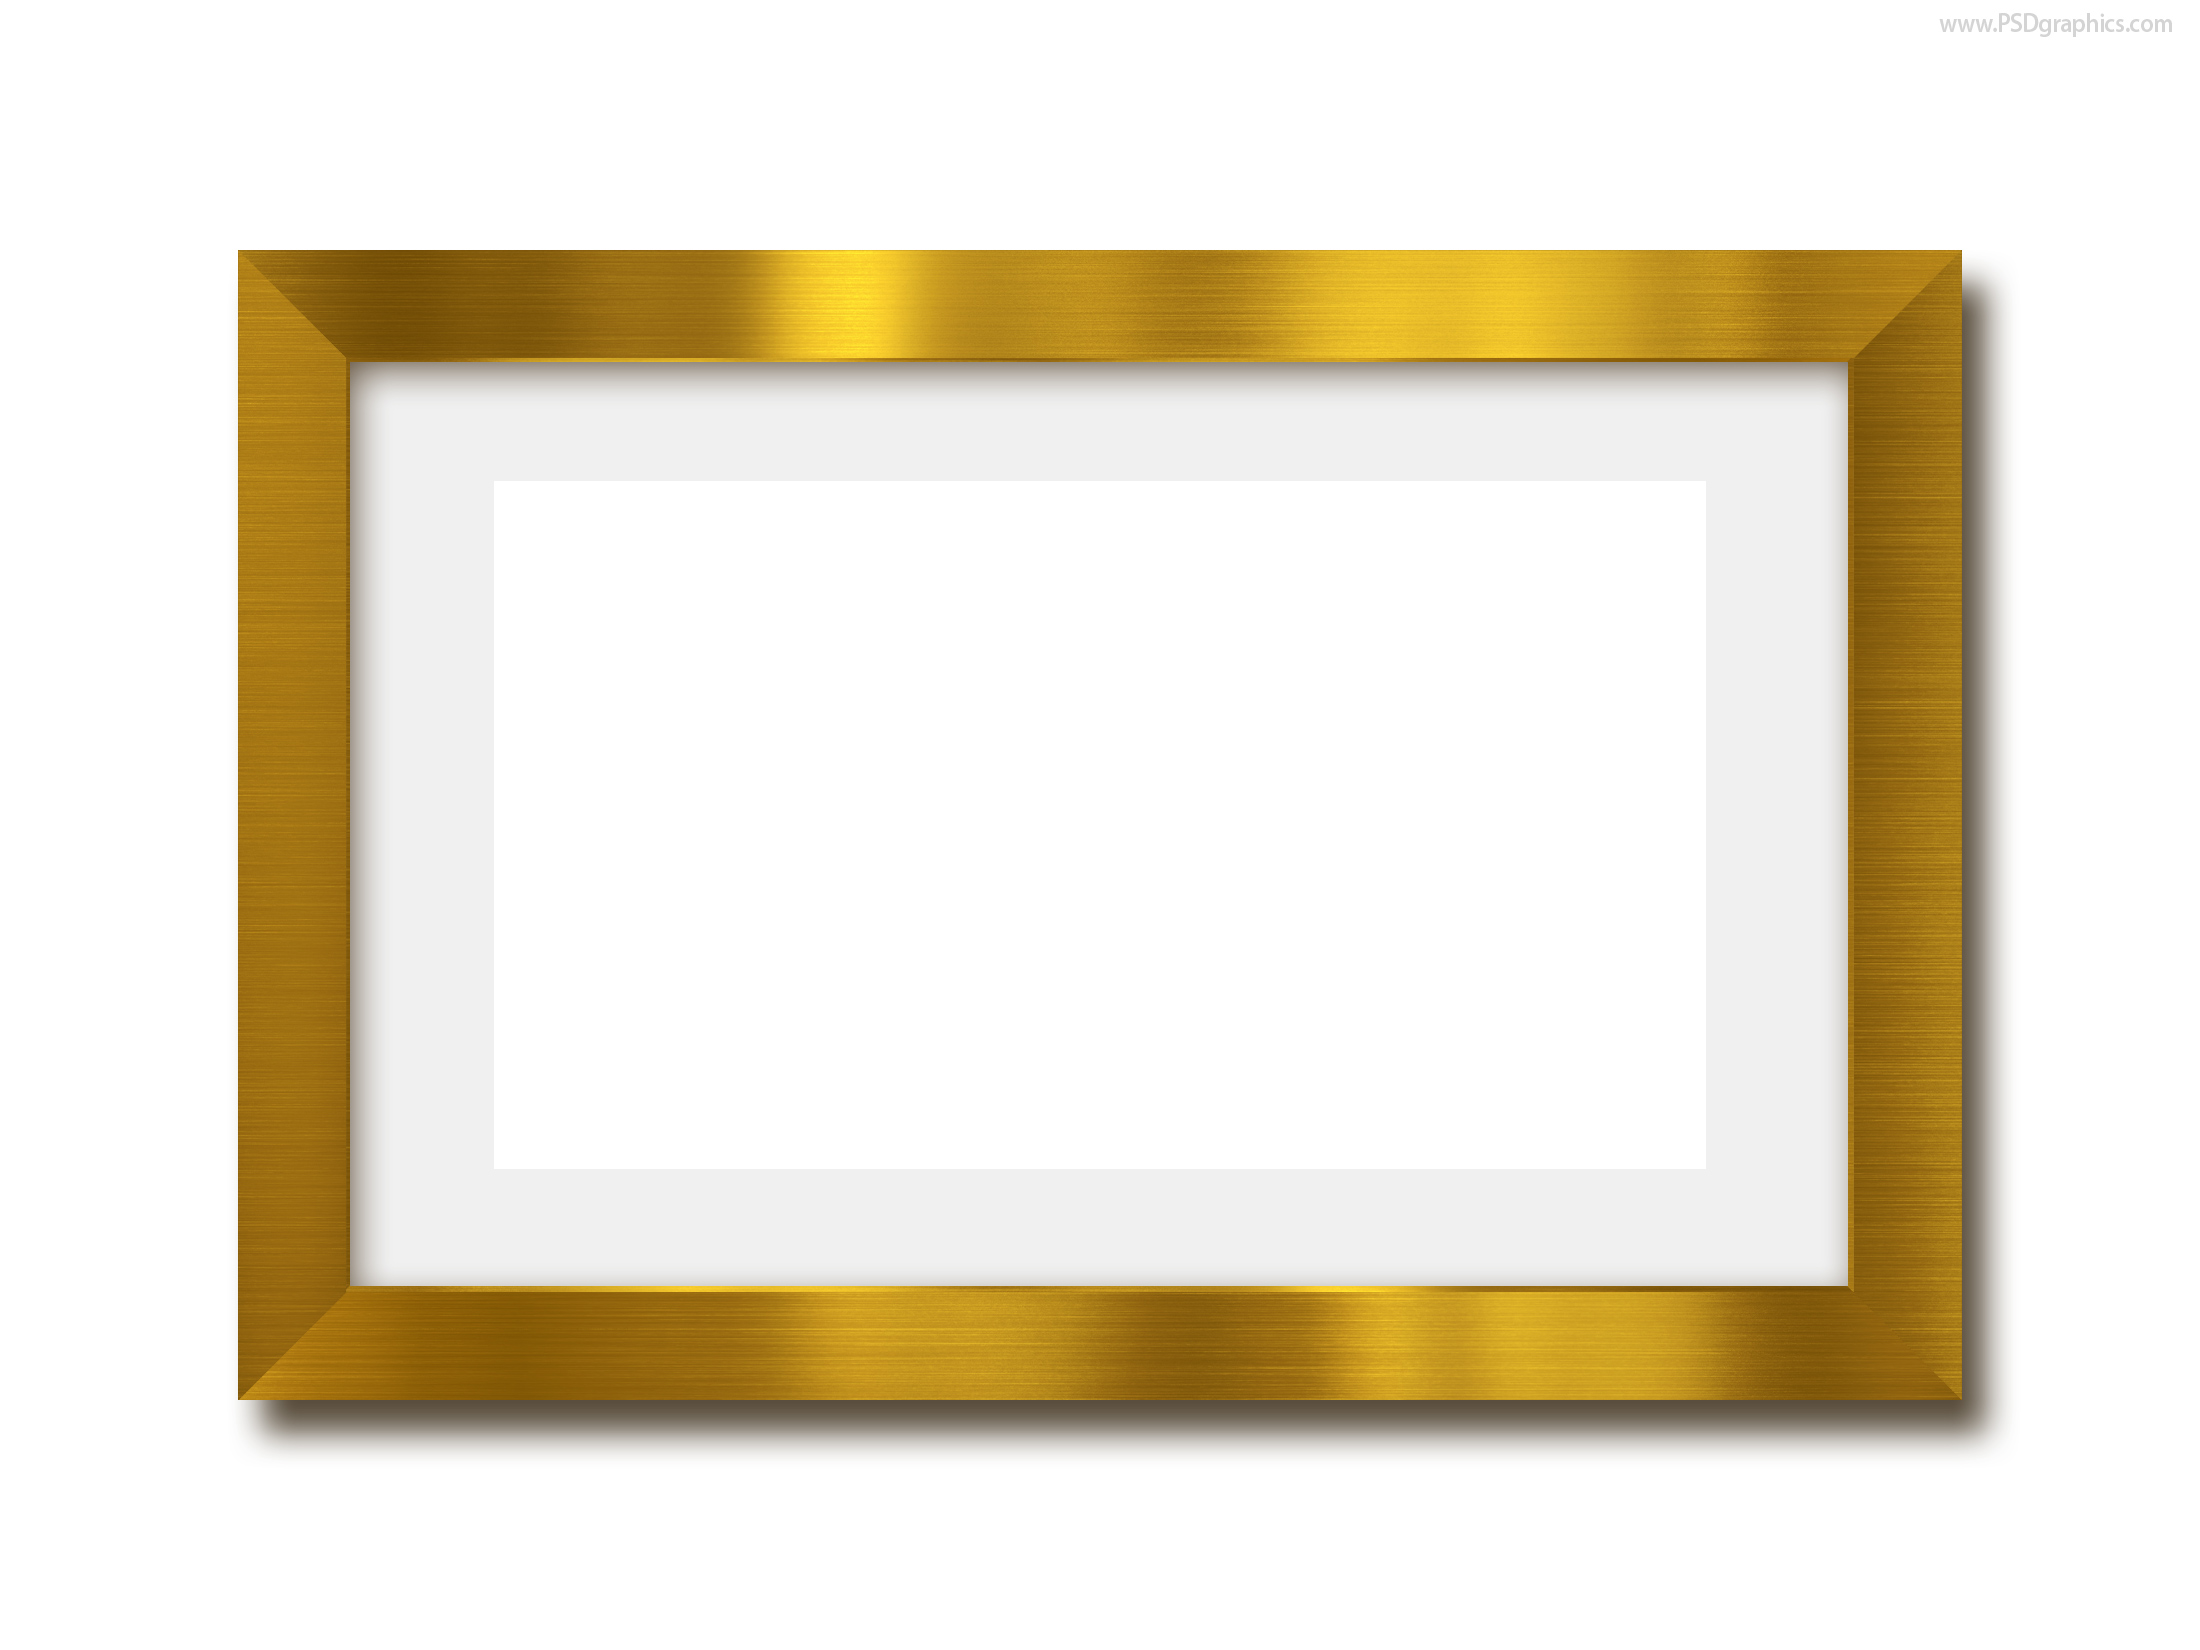 gold photo frame psd template psdgraphics